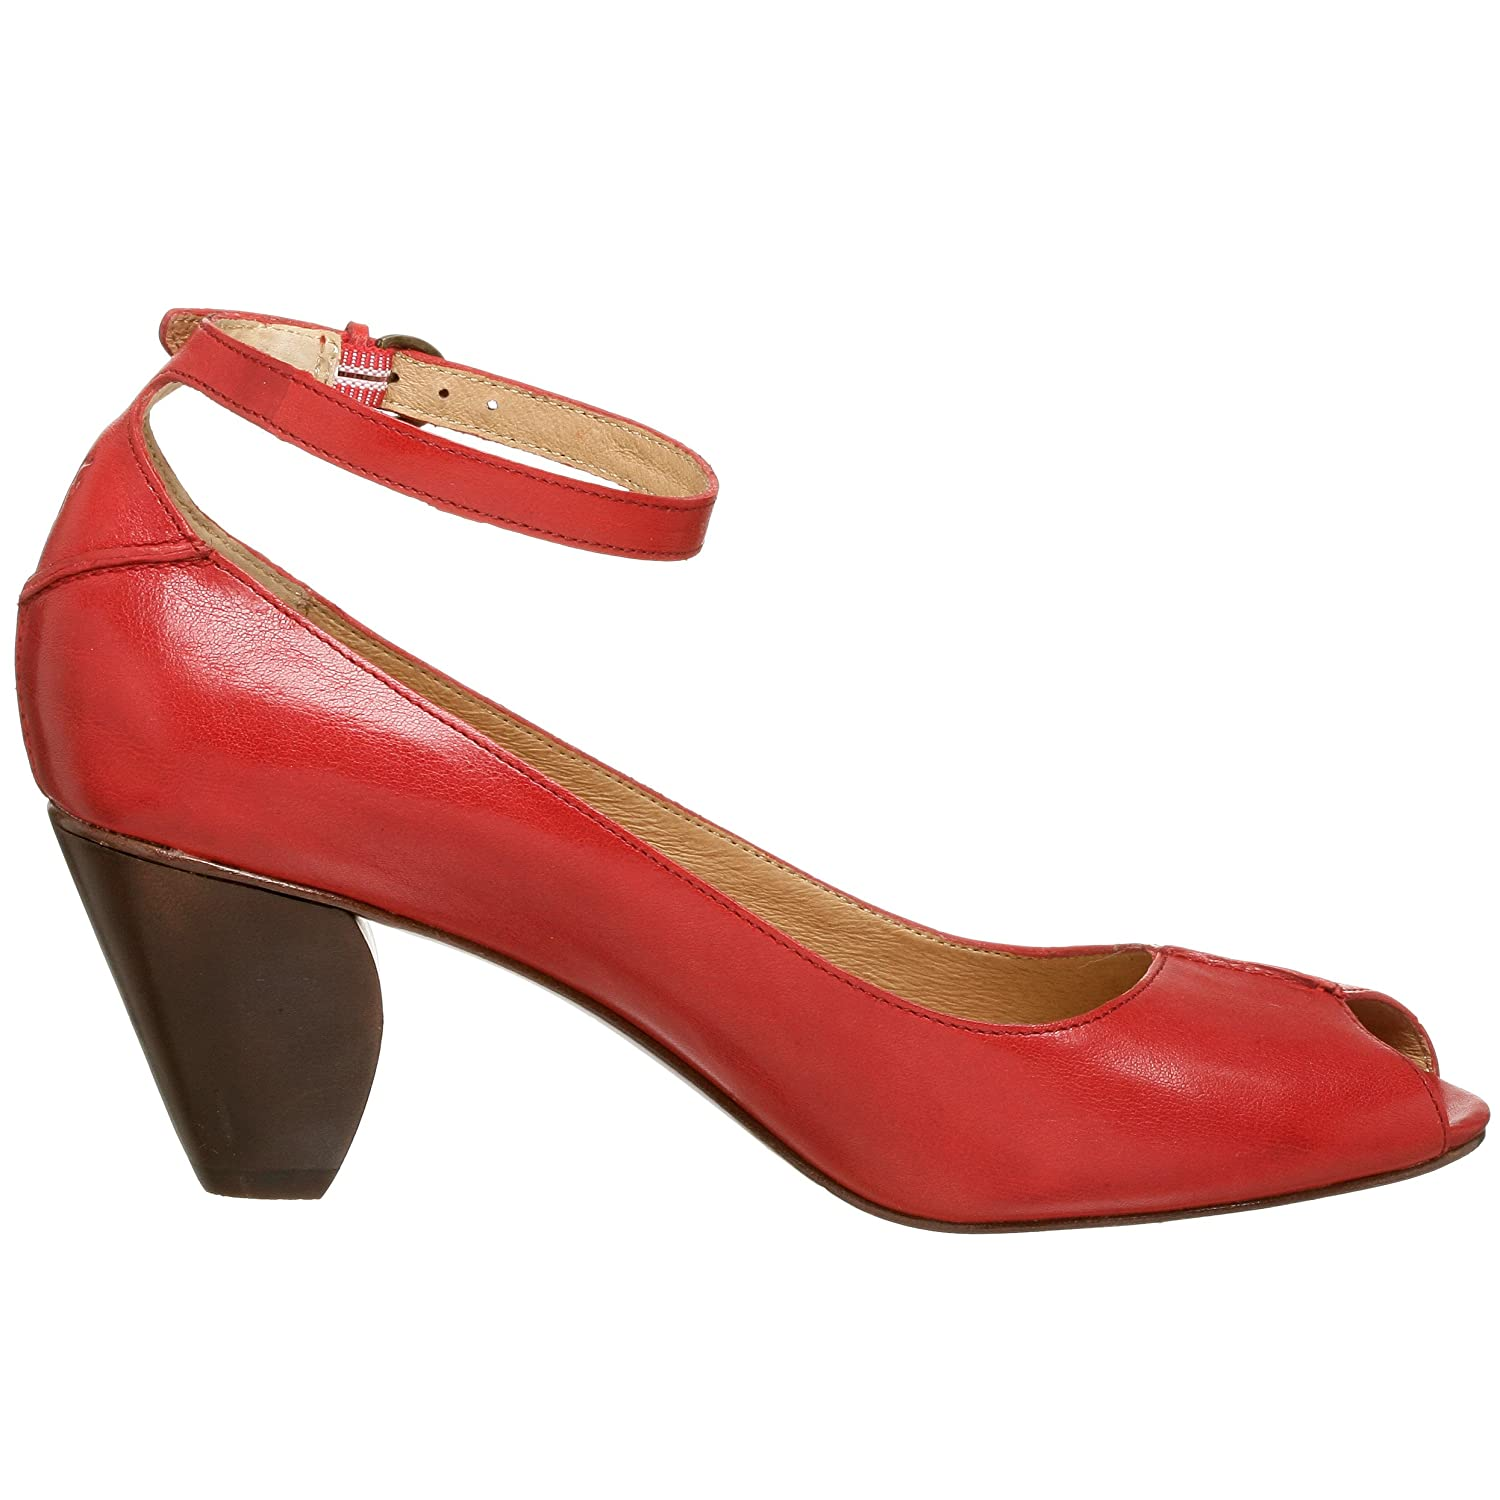 Frye Louise Pump - Free Overnight Shipping & Return Shipping: Endless.com from endless.com